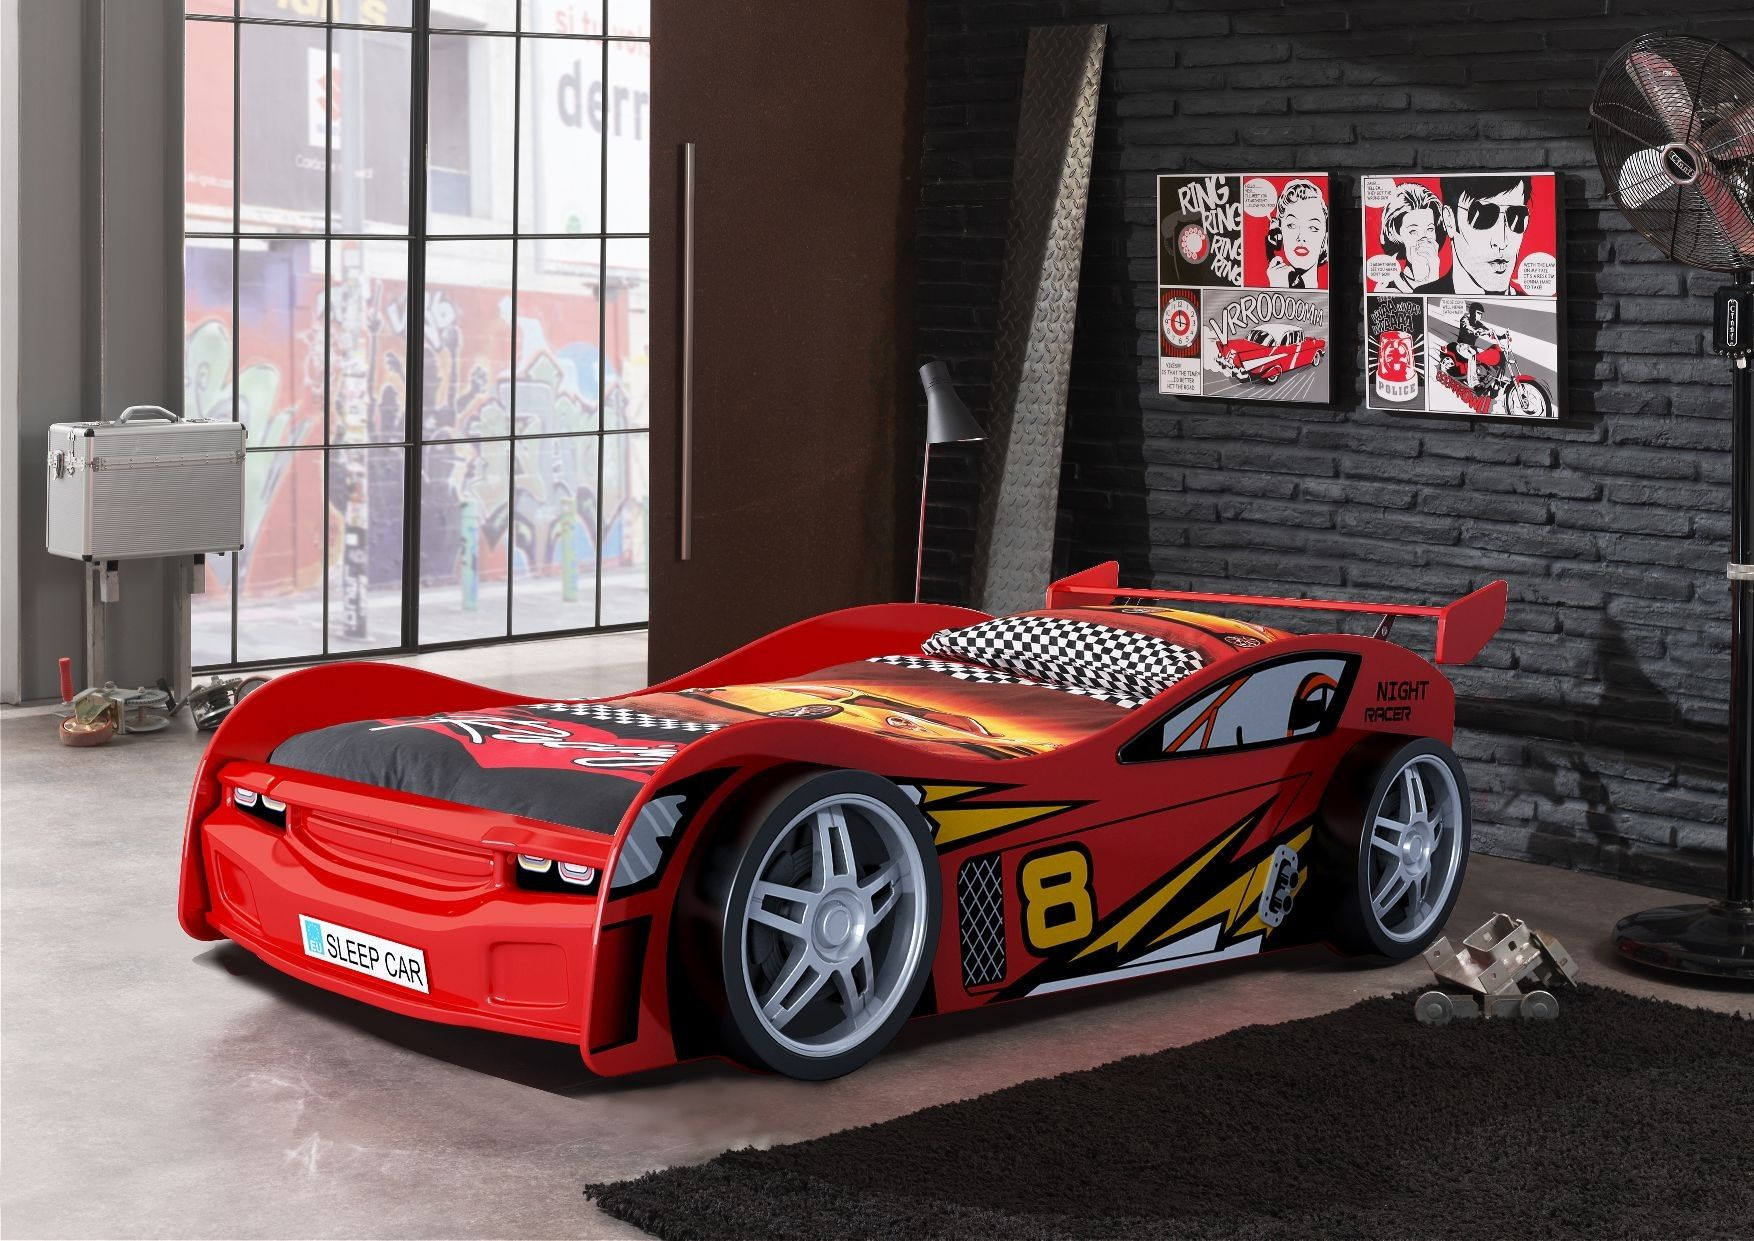 night racer kids car bed with racing themed linen and garage style dcor available at forty winks